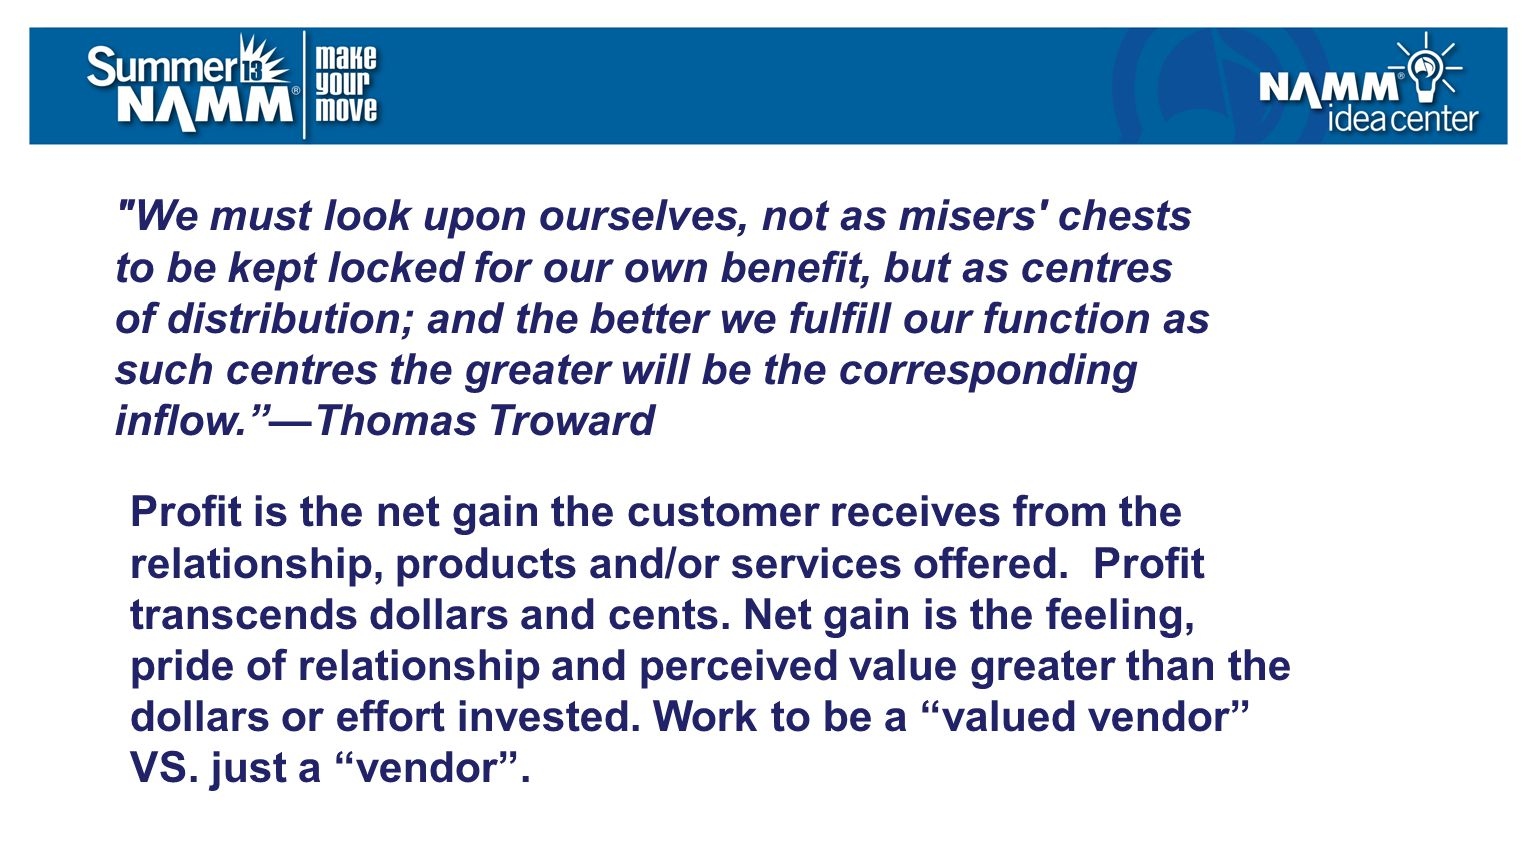 We must look upon ourselves, not as misers chests to be kept locked for our own benefit, but as centres of distribution; and the better we fulfill our function as such centres the greater will be the corresponding inflow. —Thomas Troward Profit is the net gain the customer receives from the relationship, products and/or services offered.